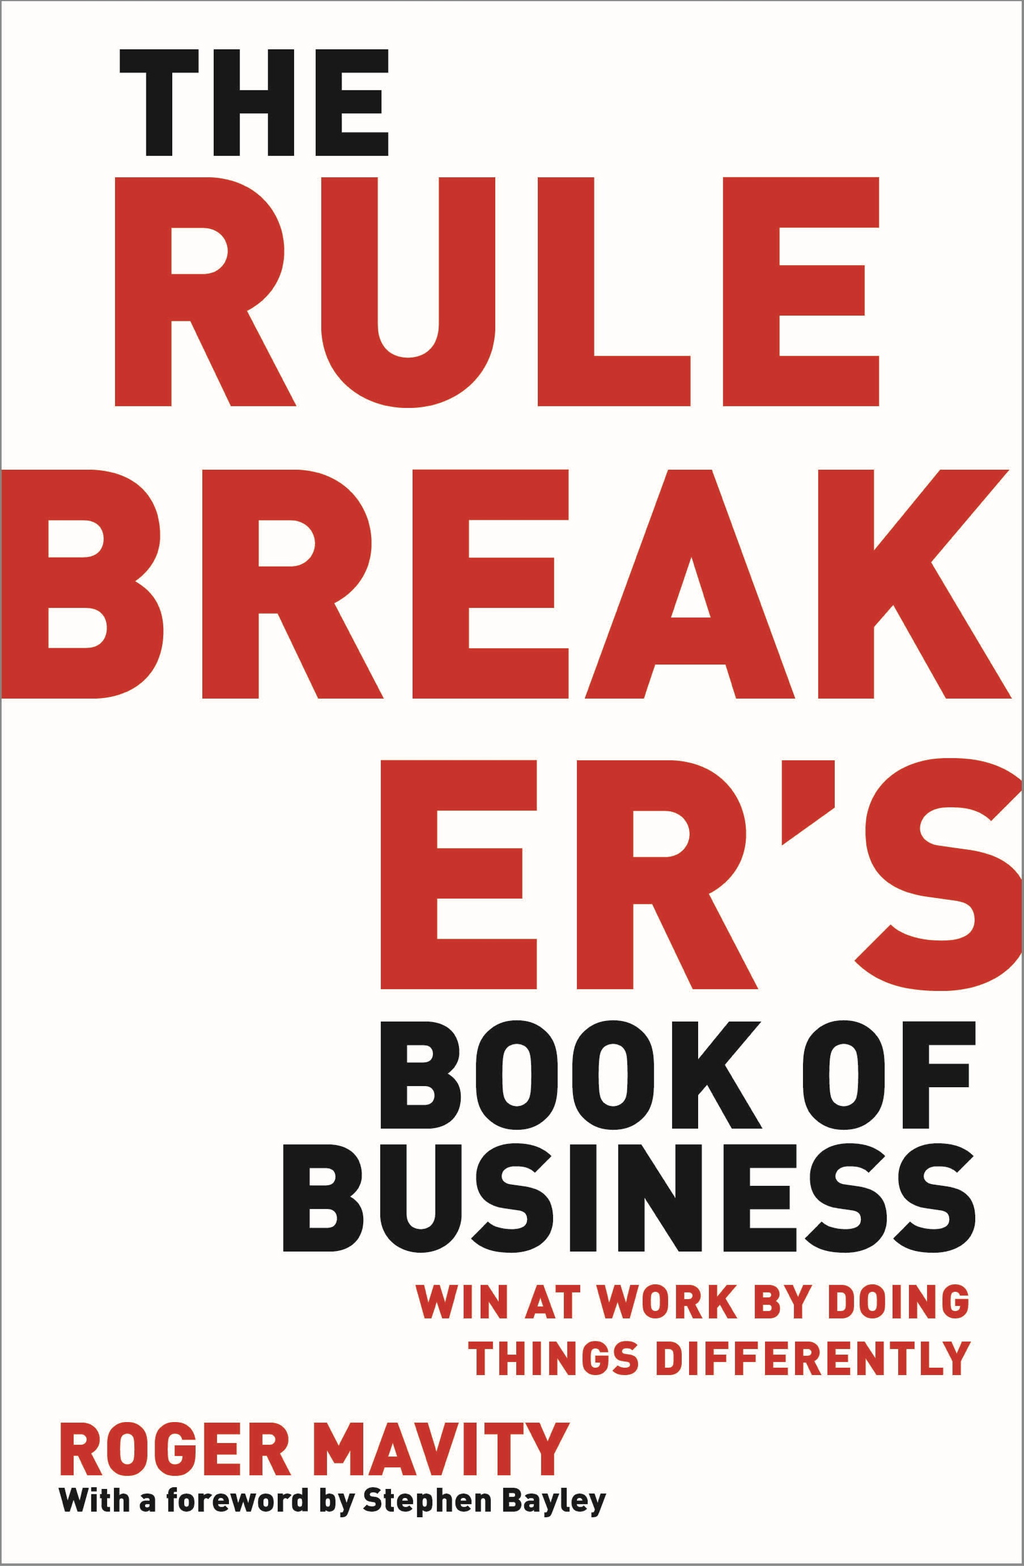 The Rule Breaker's Book of Business Win at work by doing things differently